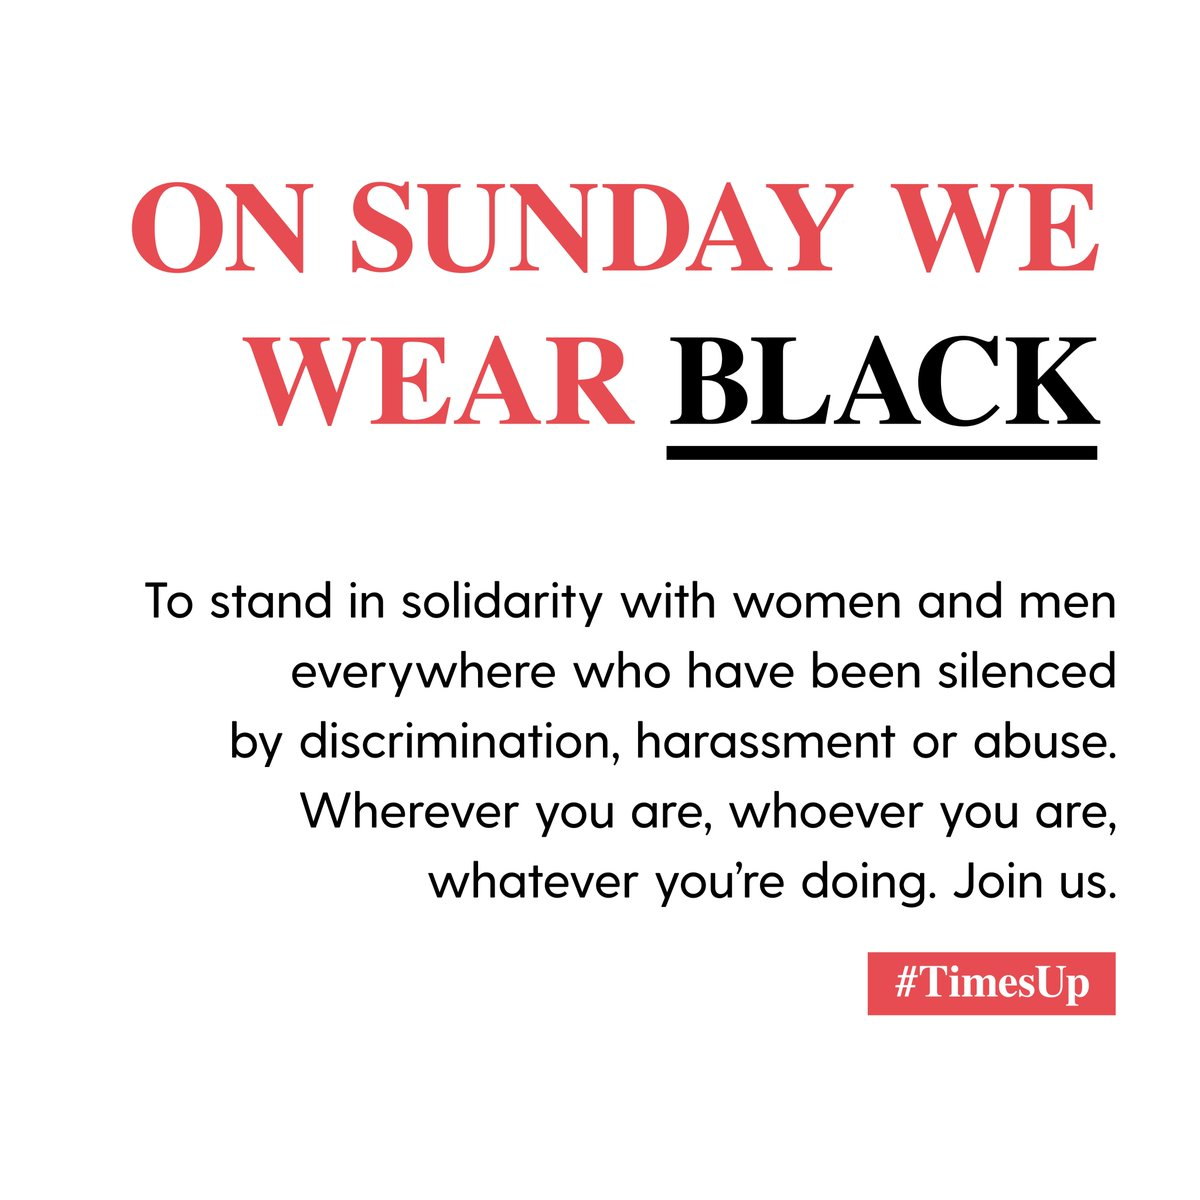 RT @TIMESUPNOW: Join us in saying #TIMESUP to the world. #WHYWEWEARBLACK https://t.co/s2V5OSnEpj